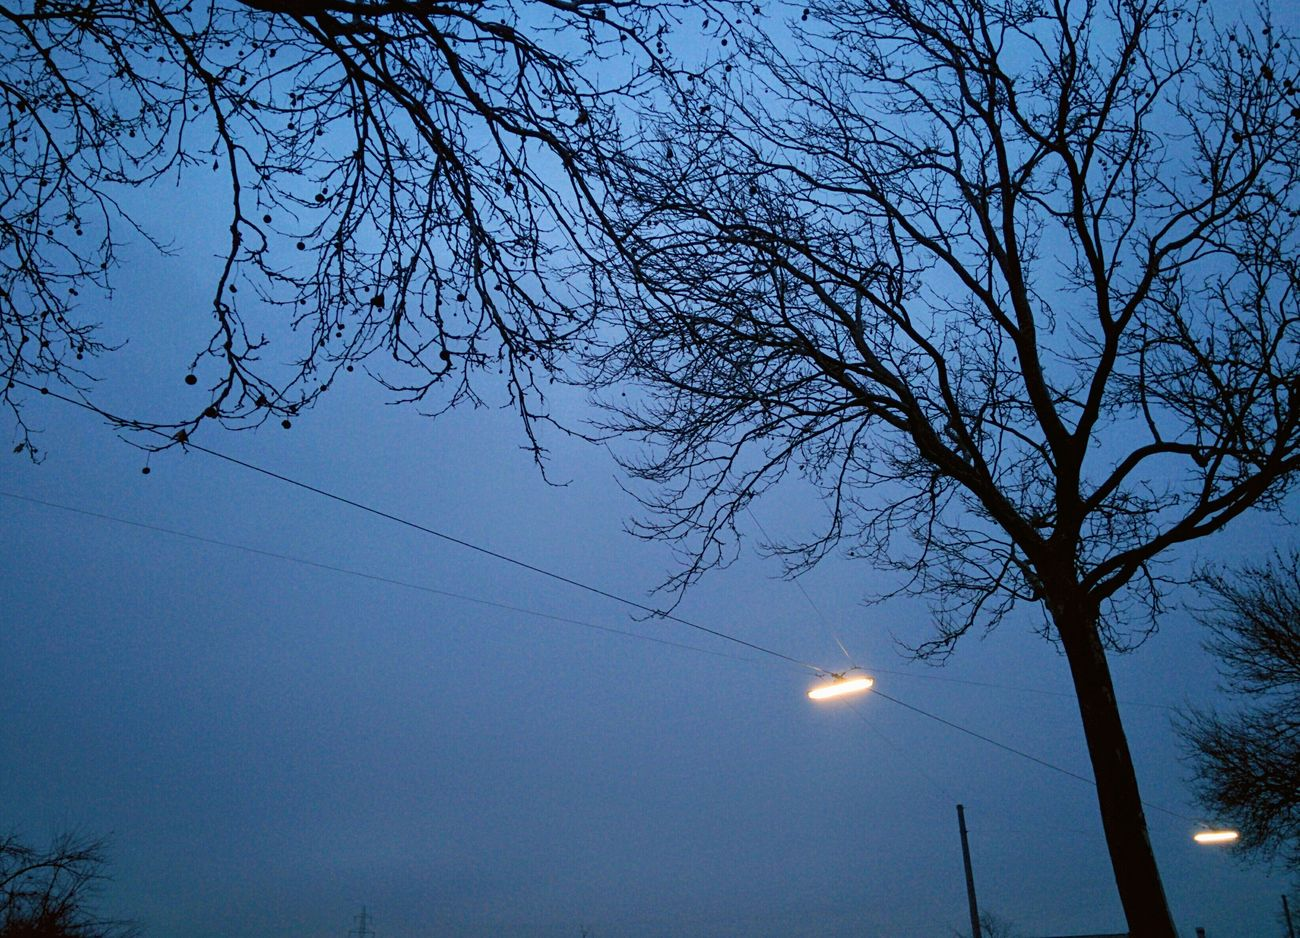 Blue Hour Low Angle View Tree Trees Silhouette And Sky Silhouettes Of Trees Wintertime Afternoon Blues Coldweather I Love My City Silent Moment Stillness In Time Artificial Light Darknessfalls Melancholic Landscapes Melancholy Tranquility Dusk Evening Look Up And Thrive Branches And Sky Blue Sky Blue Wave Blueish Vienna